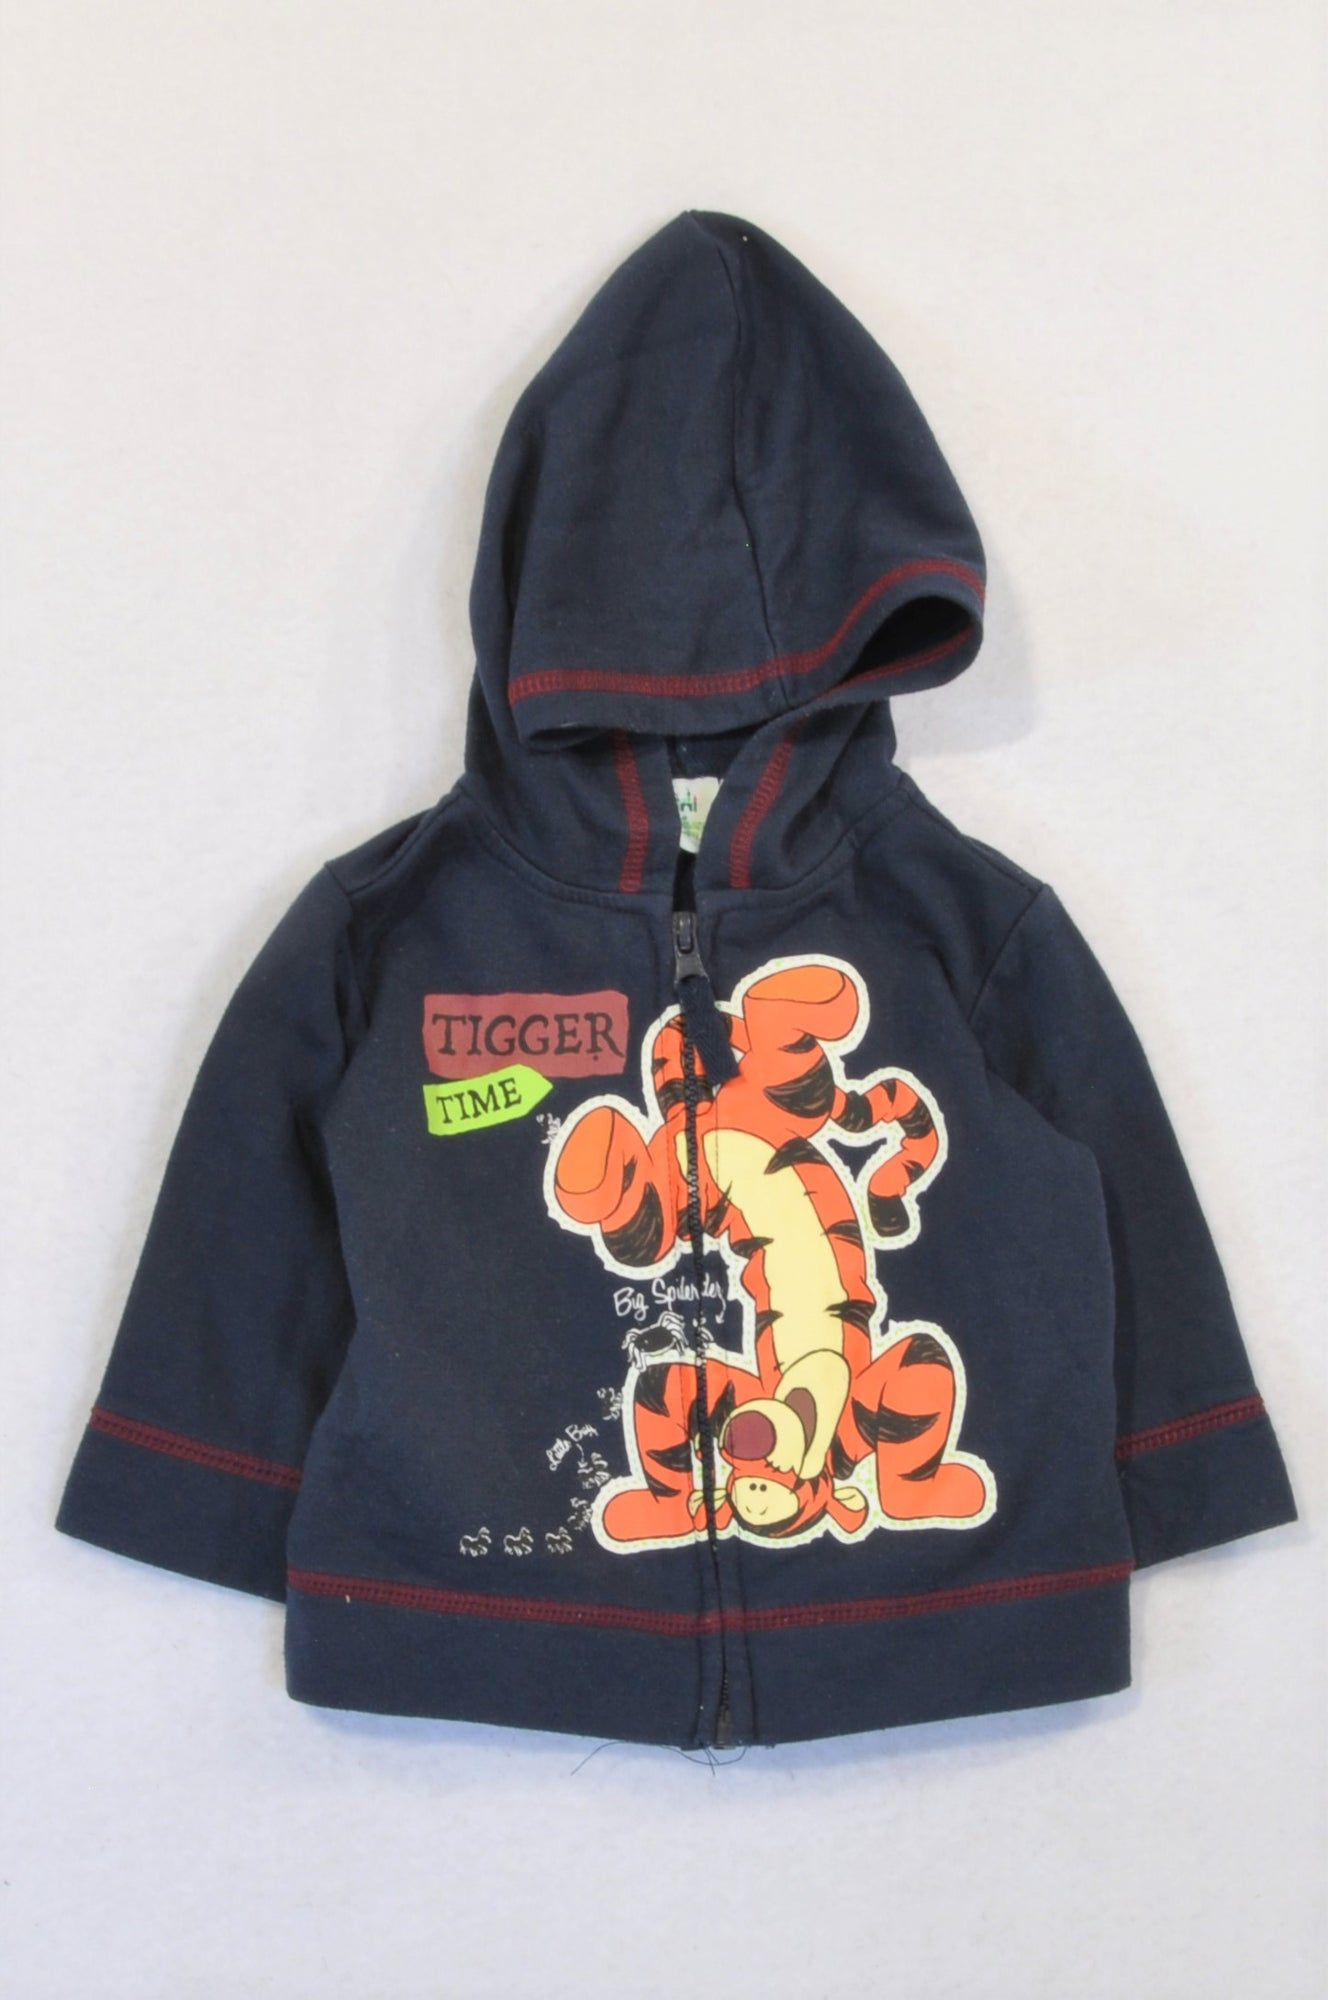 Disney Navy Tigger Time Hoodie Boys 3-6 months